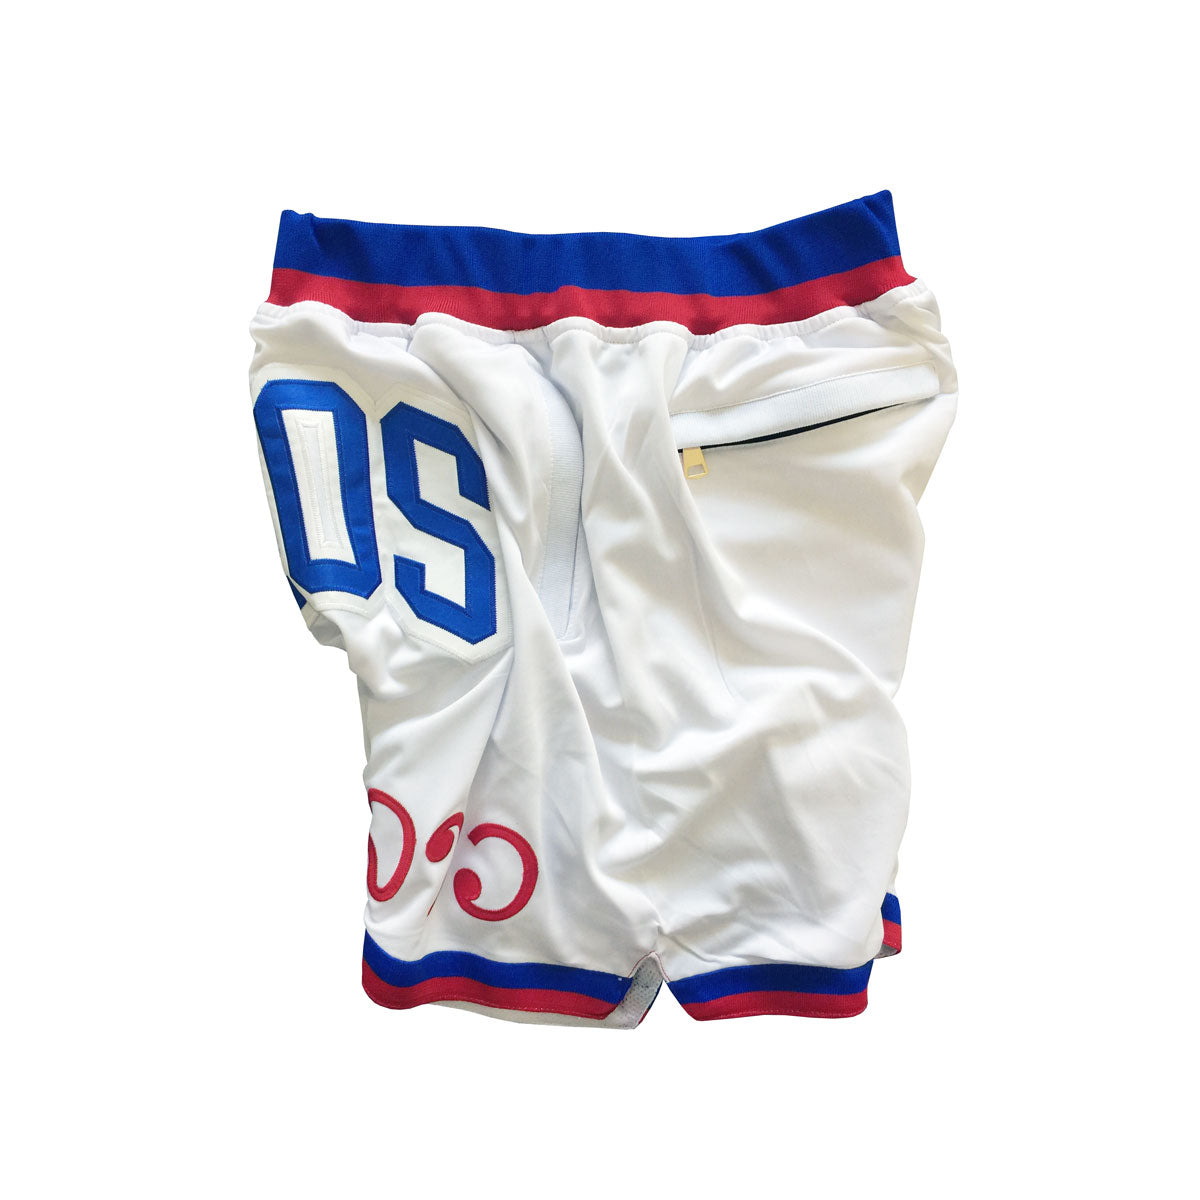 Muay Lao Vintage Basketball Shorts